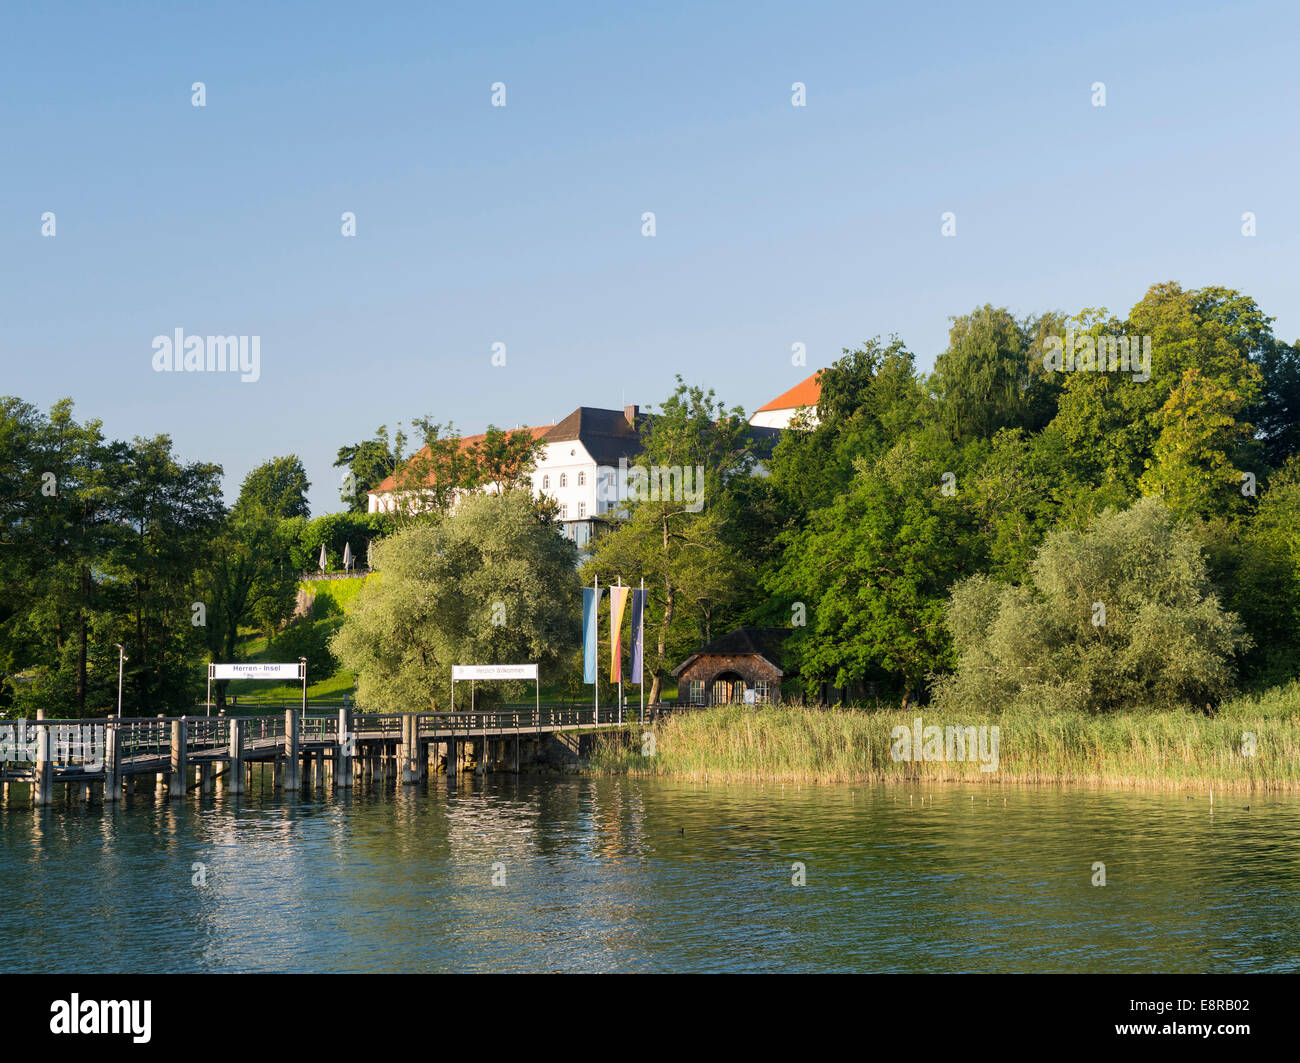 Herreninsel, jetty for the excursion boats bringing visitors to Herrenchiemsee Palace, Bavaria, Germany. - Stock Image